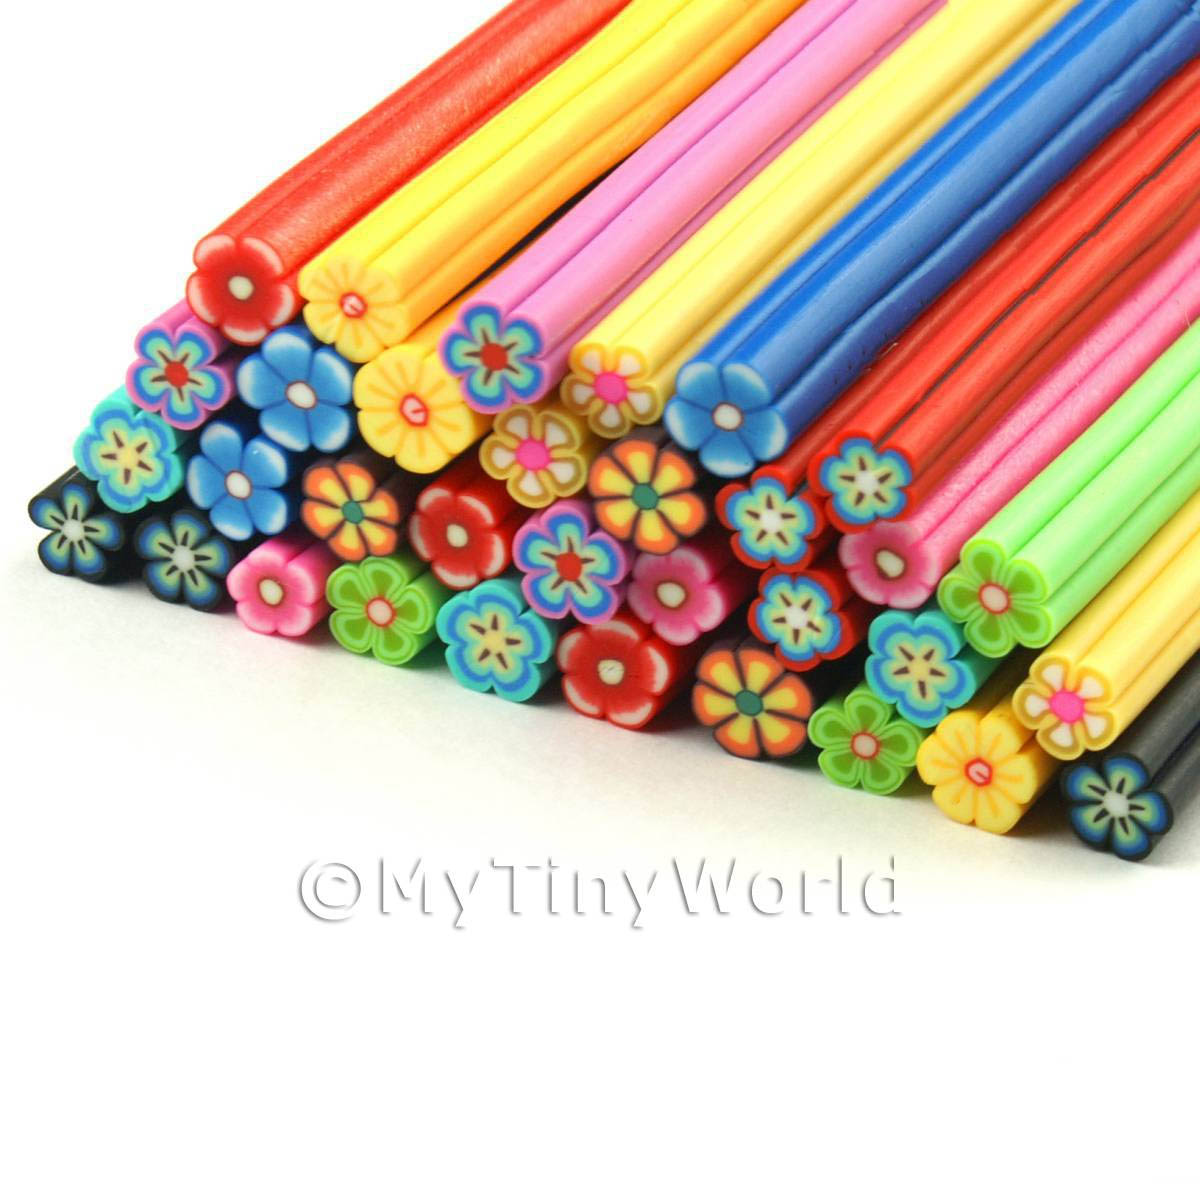 33 Mixed Flower Canes - Nail Art